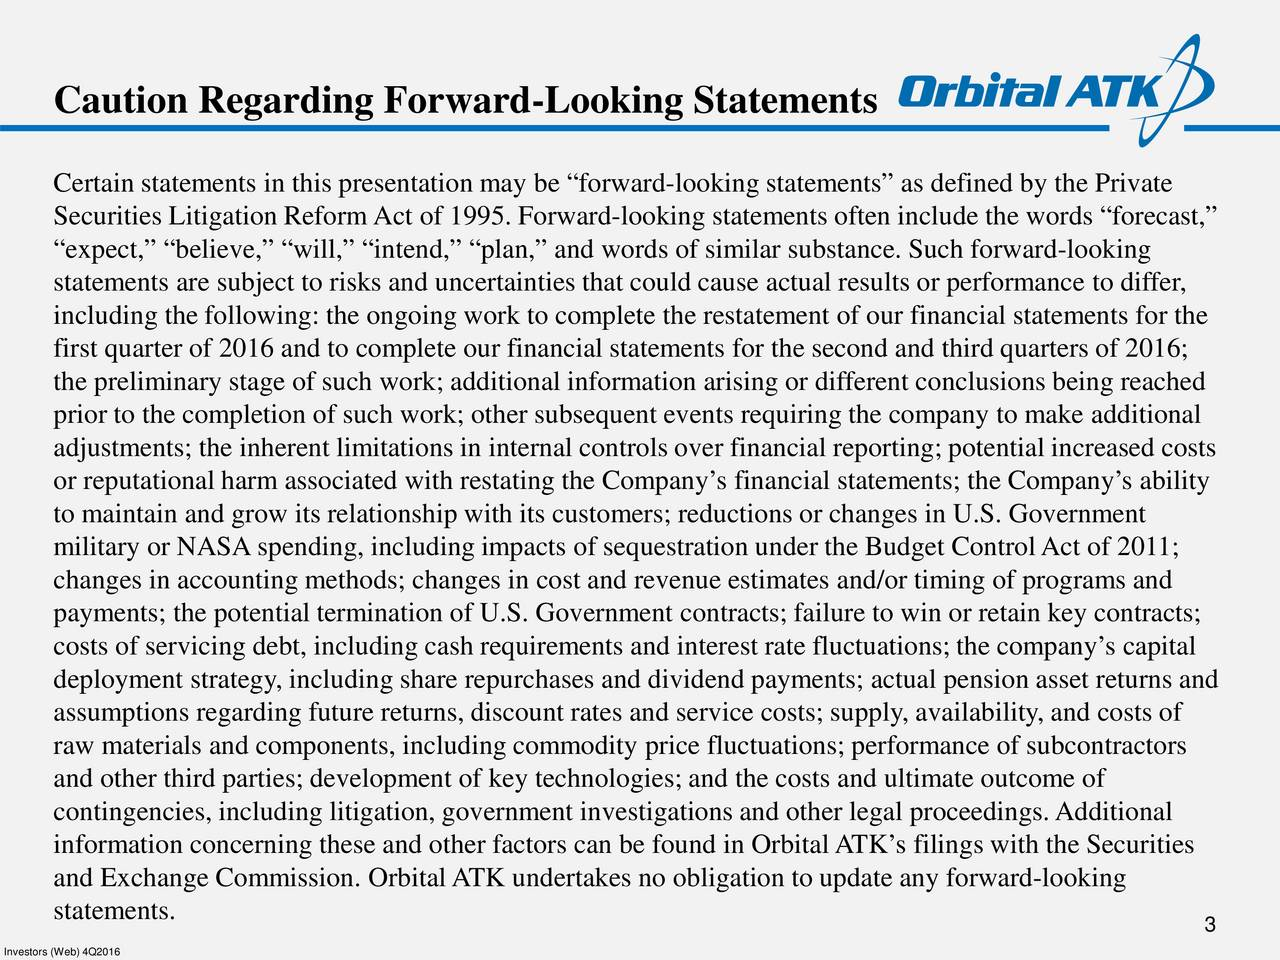 Certain statements in thispresentation may be forward-looking statements as defined by the Private Securities Litigation Reform Act of 1995. Forward-looking statements often include the words forecast, expect, believe, will, intend, plan, and words of similar substance. Such forward-looking statements are subject to risks and uncertainties that could cause actual results or performance to differ, including the following: the ongoing work to complete the restatement of our financial statements for the first quarter of 2016 and to complete our financial statements for the second and third quarters of 2016; the preliminary stage of such work; additional information arising or different conclusions being reached prior to the completion of such work; other subsequent events requiring the company to make additional adjustments; the inherent limitations in internal controls over financial reporting; potential increased costs or reputational harm associated with restating the Companys financial statements; theCompanys ability to maintain and grow its relationship with its customers; reductions or changes in U.S. Government military or NASA spending, including impacts of sequestration under the Budget ControlAct of 2011; changes in accounting methods; changes in cost and revenue estimates and/or timing of programs and payments; the potential termination of U.S. Government contracts;failure to win or retain key contracts; costs of servicing debt, including cash requirements and interest rate fluctuations; the companys capital deployment strategy, including share repurchases and dividend payments; actual pension asset returns and assumptions regarding future returns, discount rates and service costs; supply, availability, and costs of raw materials and components, including commodity price fluctuations; performance of subcontractors and other third parties; development of key technologies; and the costs and ultimate outcome of contingencies, including litigation, government investigations and other legal proceedings.Additional information concerning these and other factors can be found in OrbitalATKs filings with the Securities and Exchange Commission. OrbitalATK undertakes no obligation to update any forward-looking statements. 3